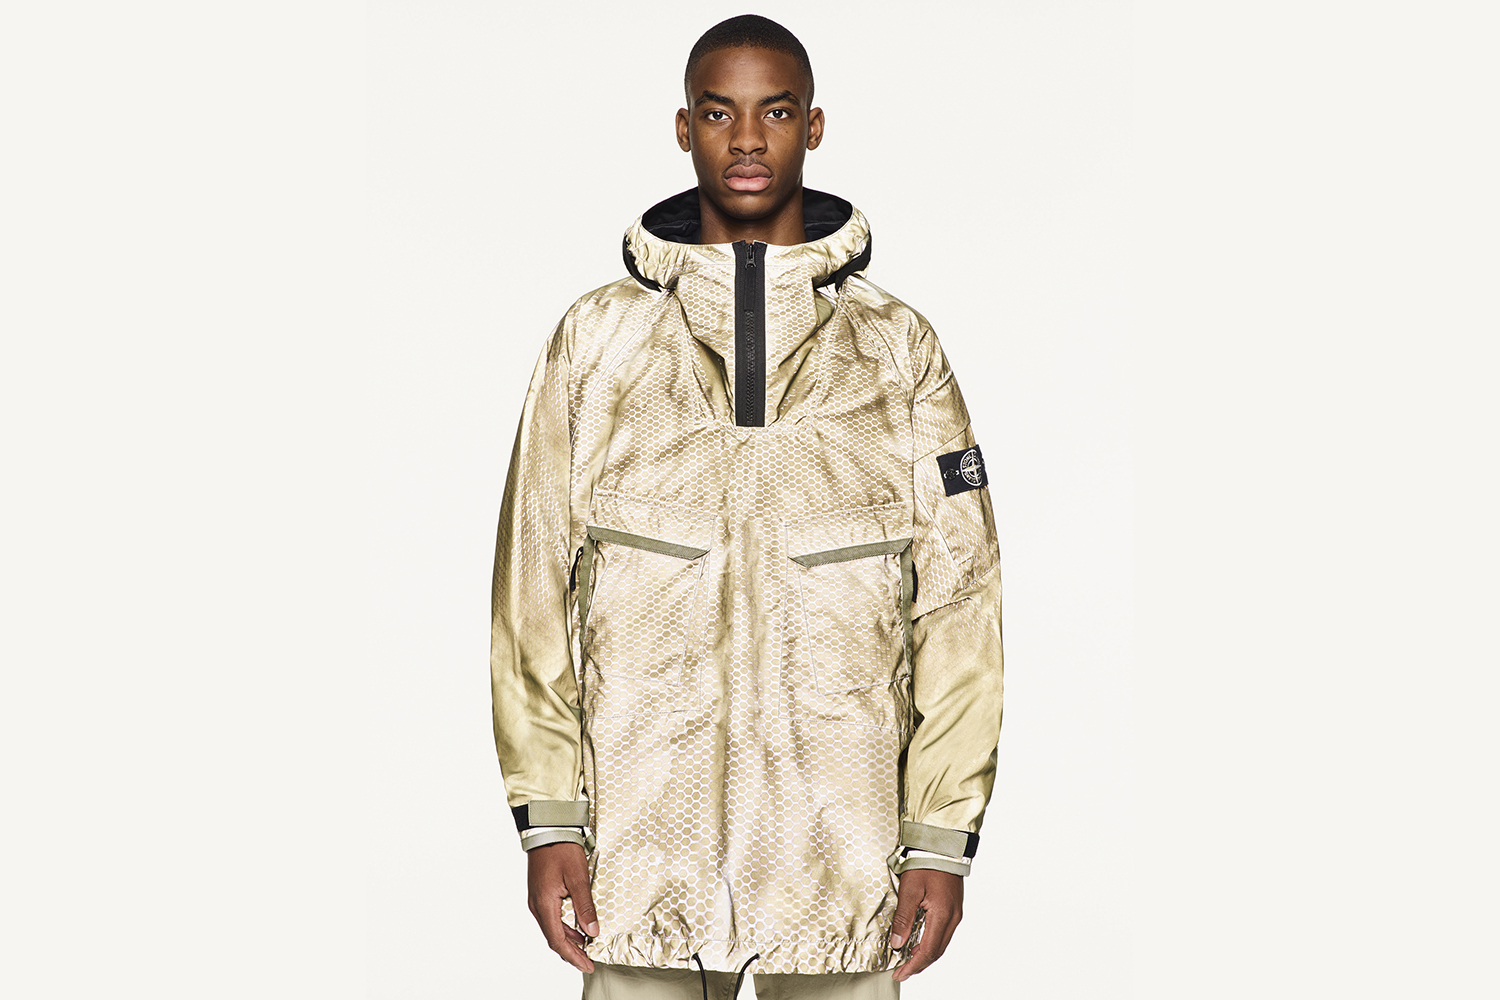 Stone Island Reveals Its Prototype Research Jacket With Laser Print Detailing